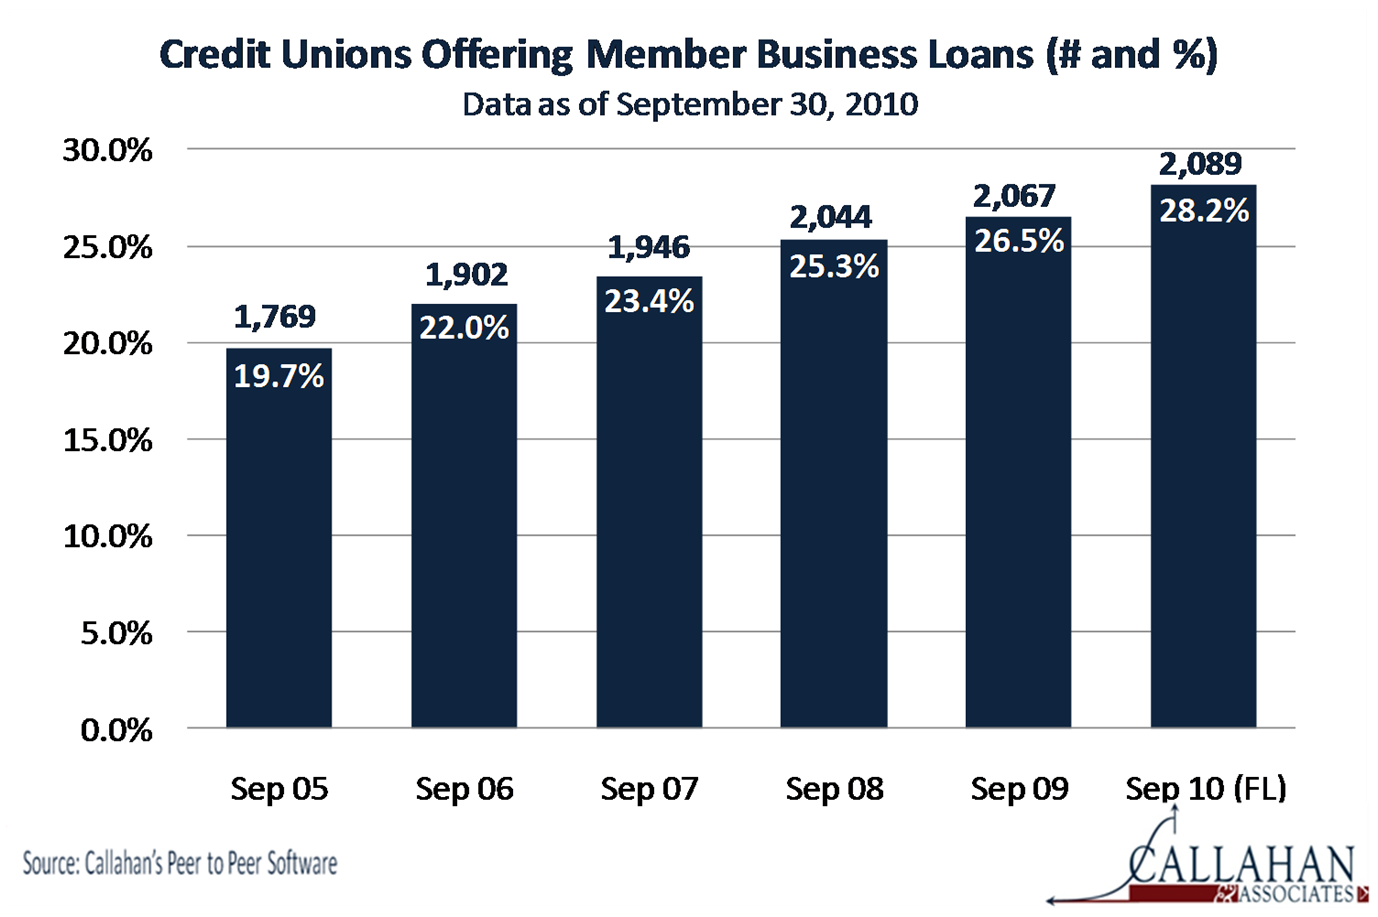 Credit Unions Offering Member Business Loans